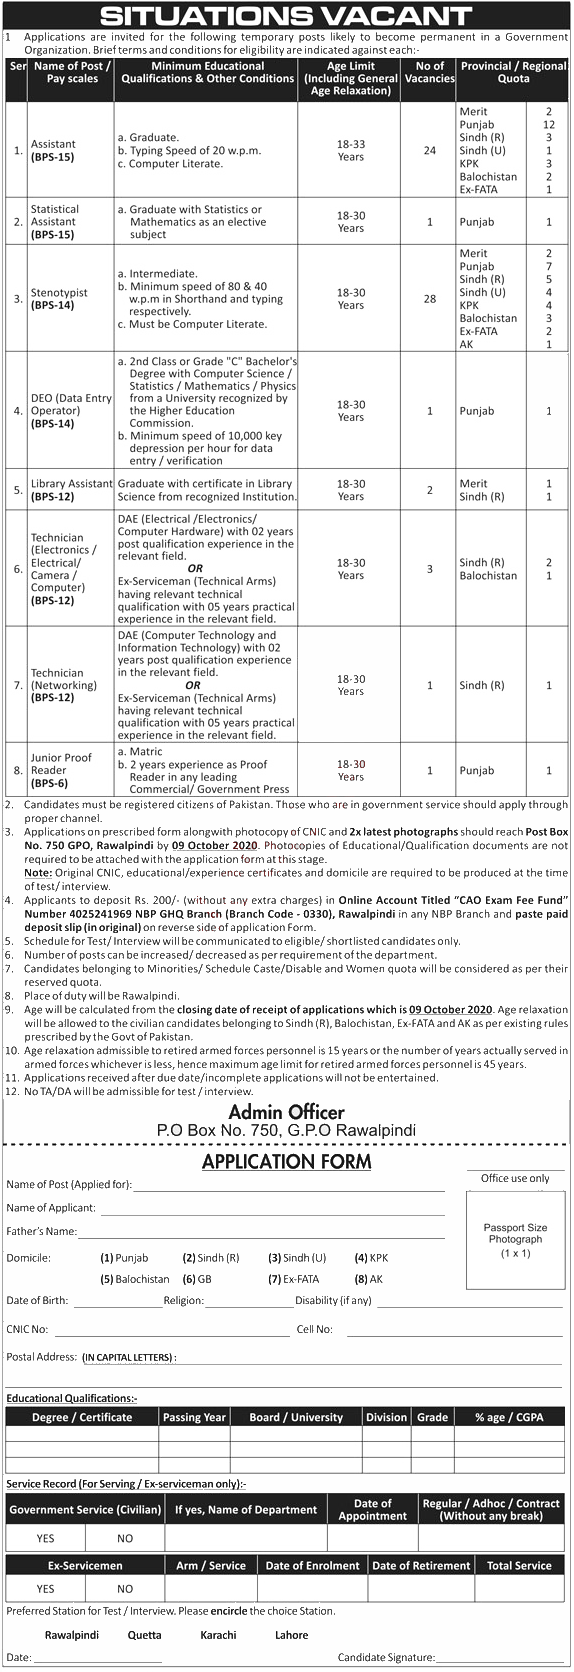 Jobs in Statistical Assistant & Stenotypist in Pakistan Army 21 September, 2020